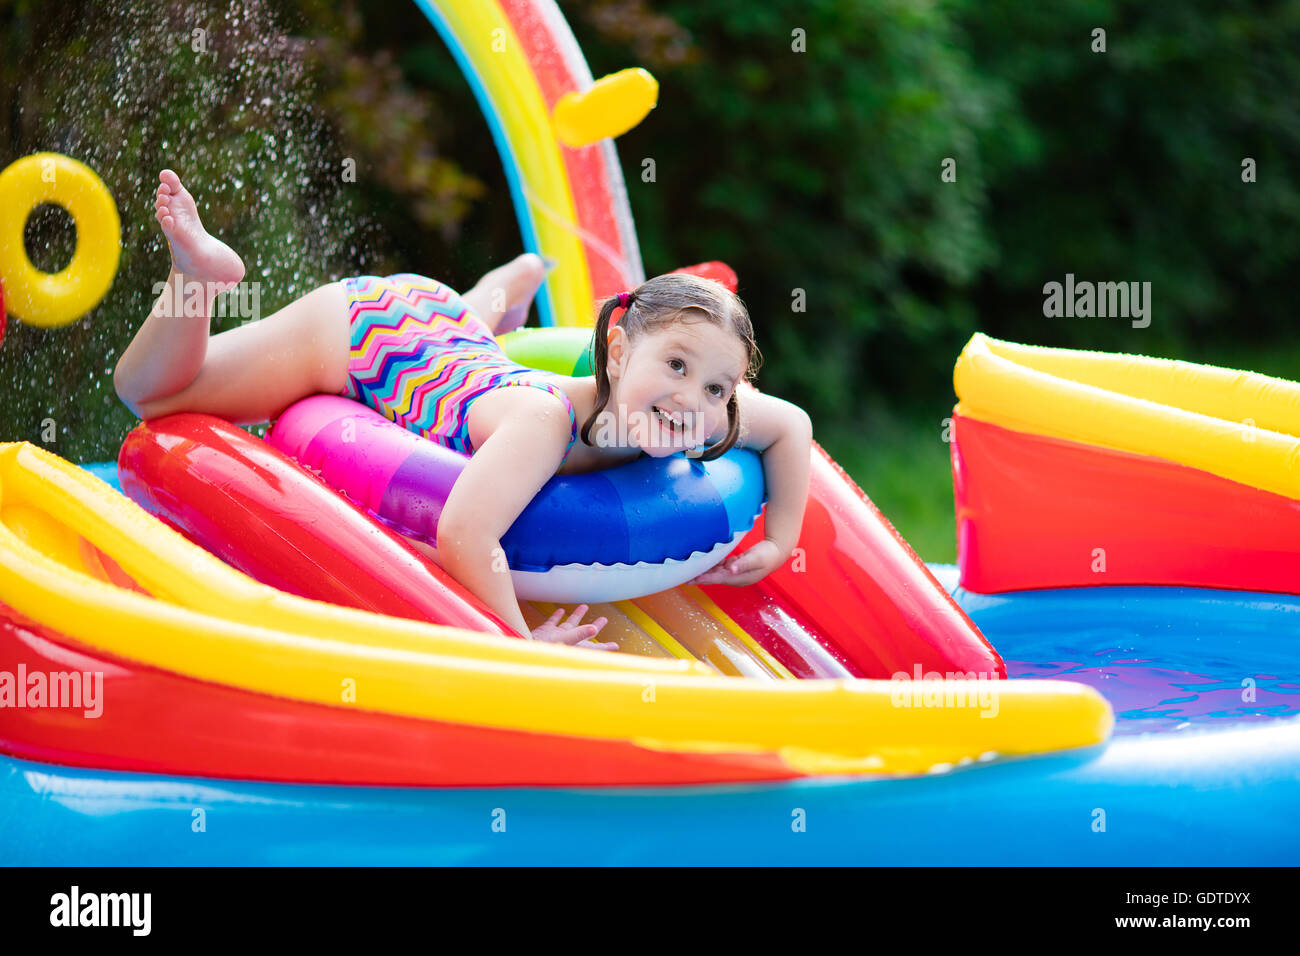 Children Playing In Inflatable Baby Pool Kids Swim And Splash In Stock Photo Royalty Free